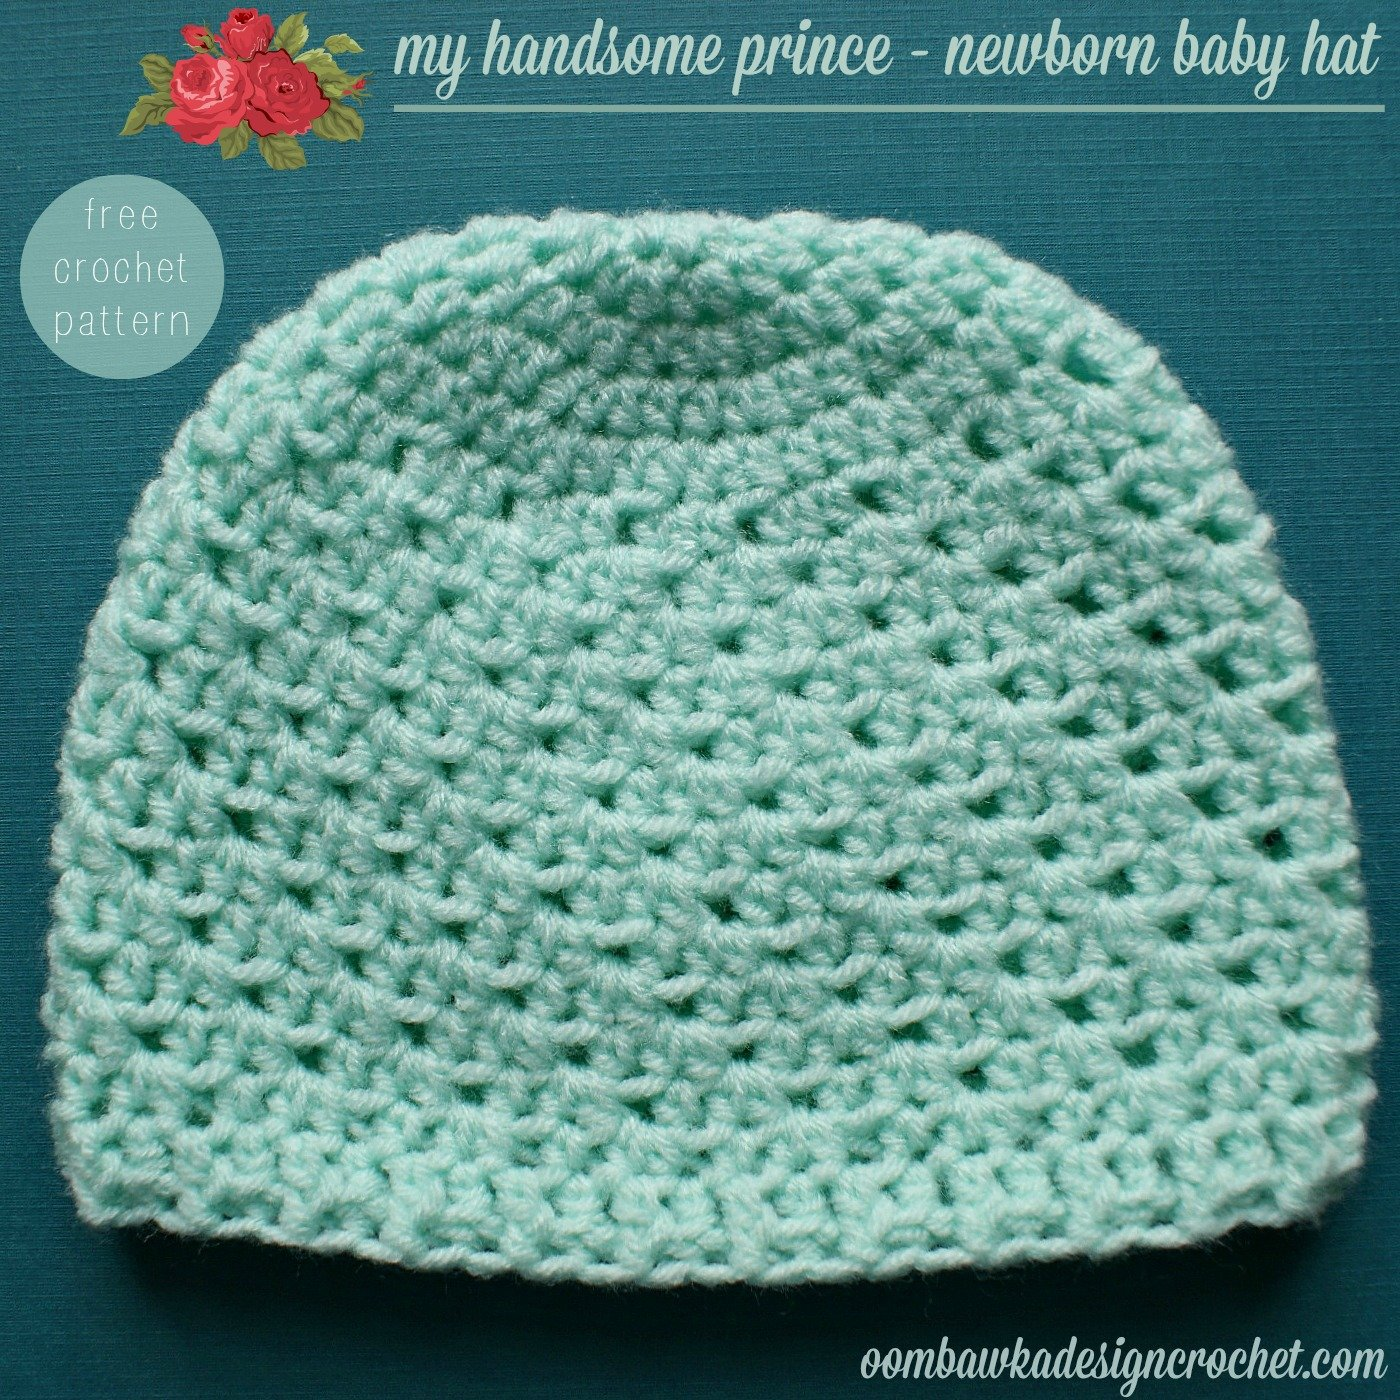 Crochet Patterns Baby Hats : My Handsome Prince Newborn Baby Hat ? Oombawka Design Crochet